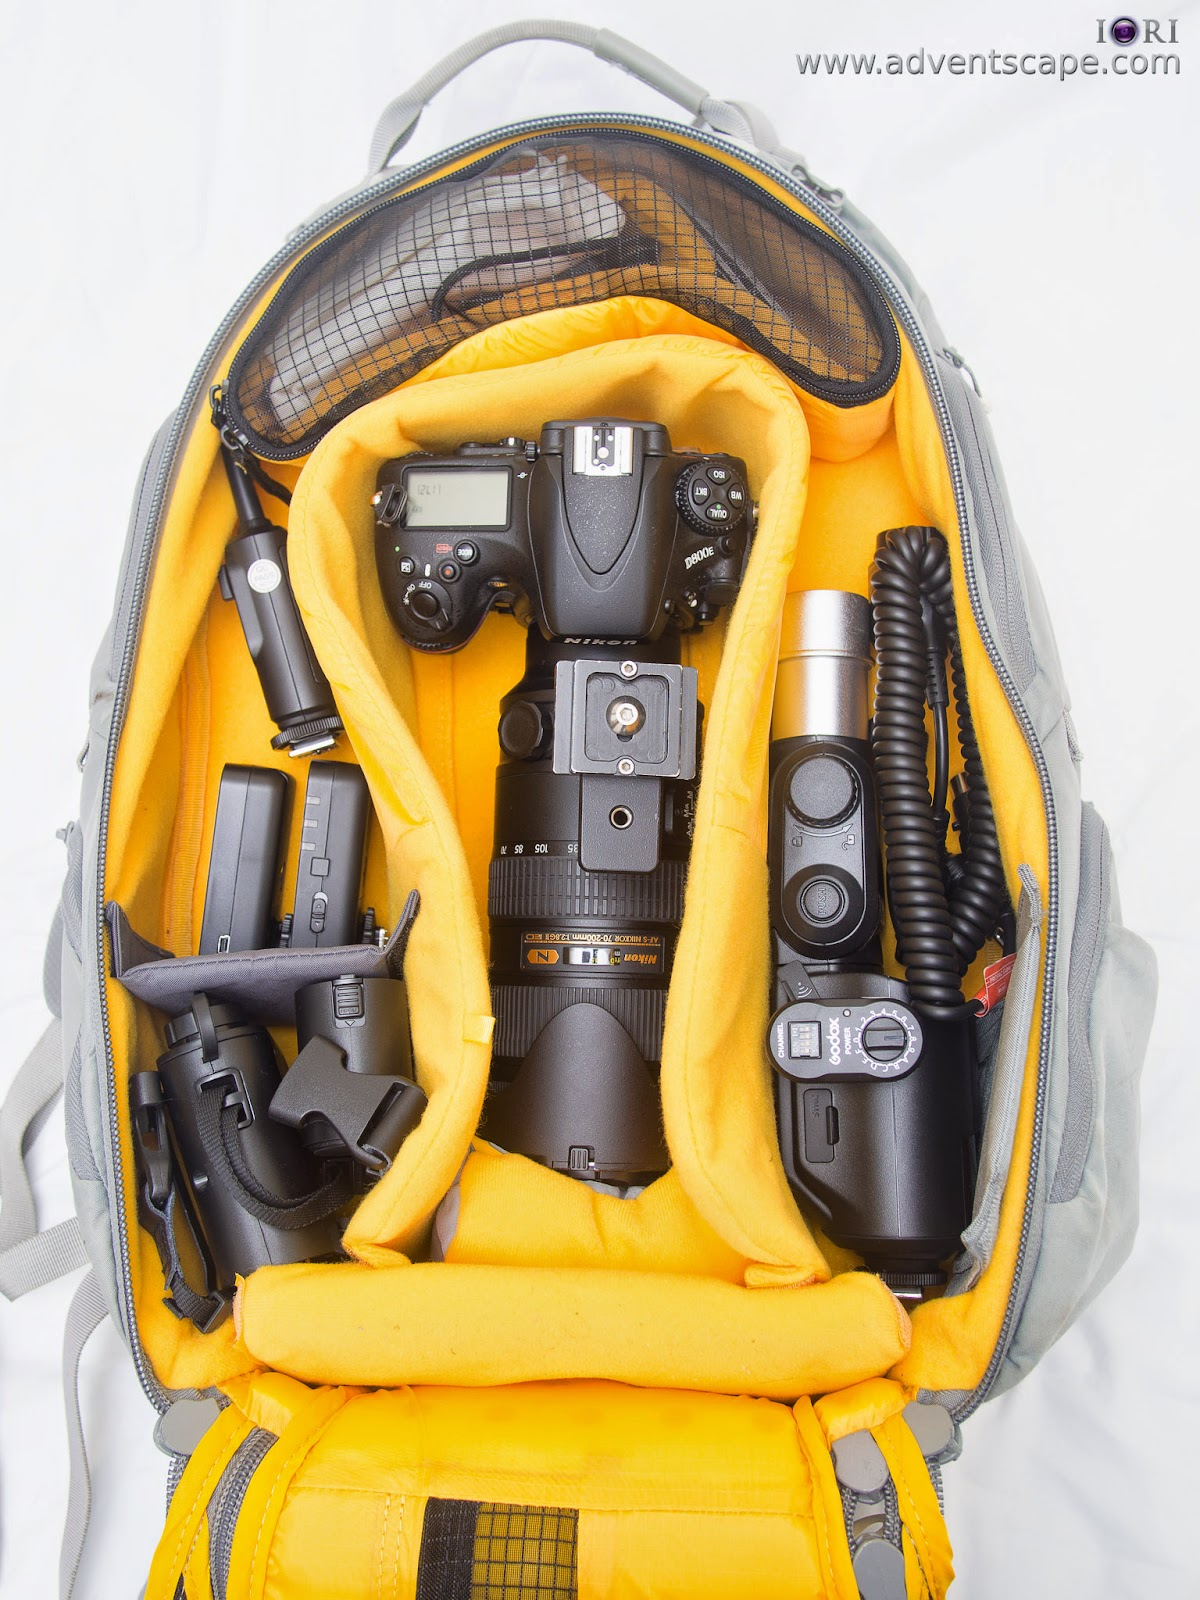 205, adventscape, Australian Landscape Photographer, bag, Bug, Kata, Manfrotto, Philip Avellana, review, accessories, pouch, strap, What's In Your Bag, Strobist